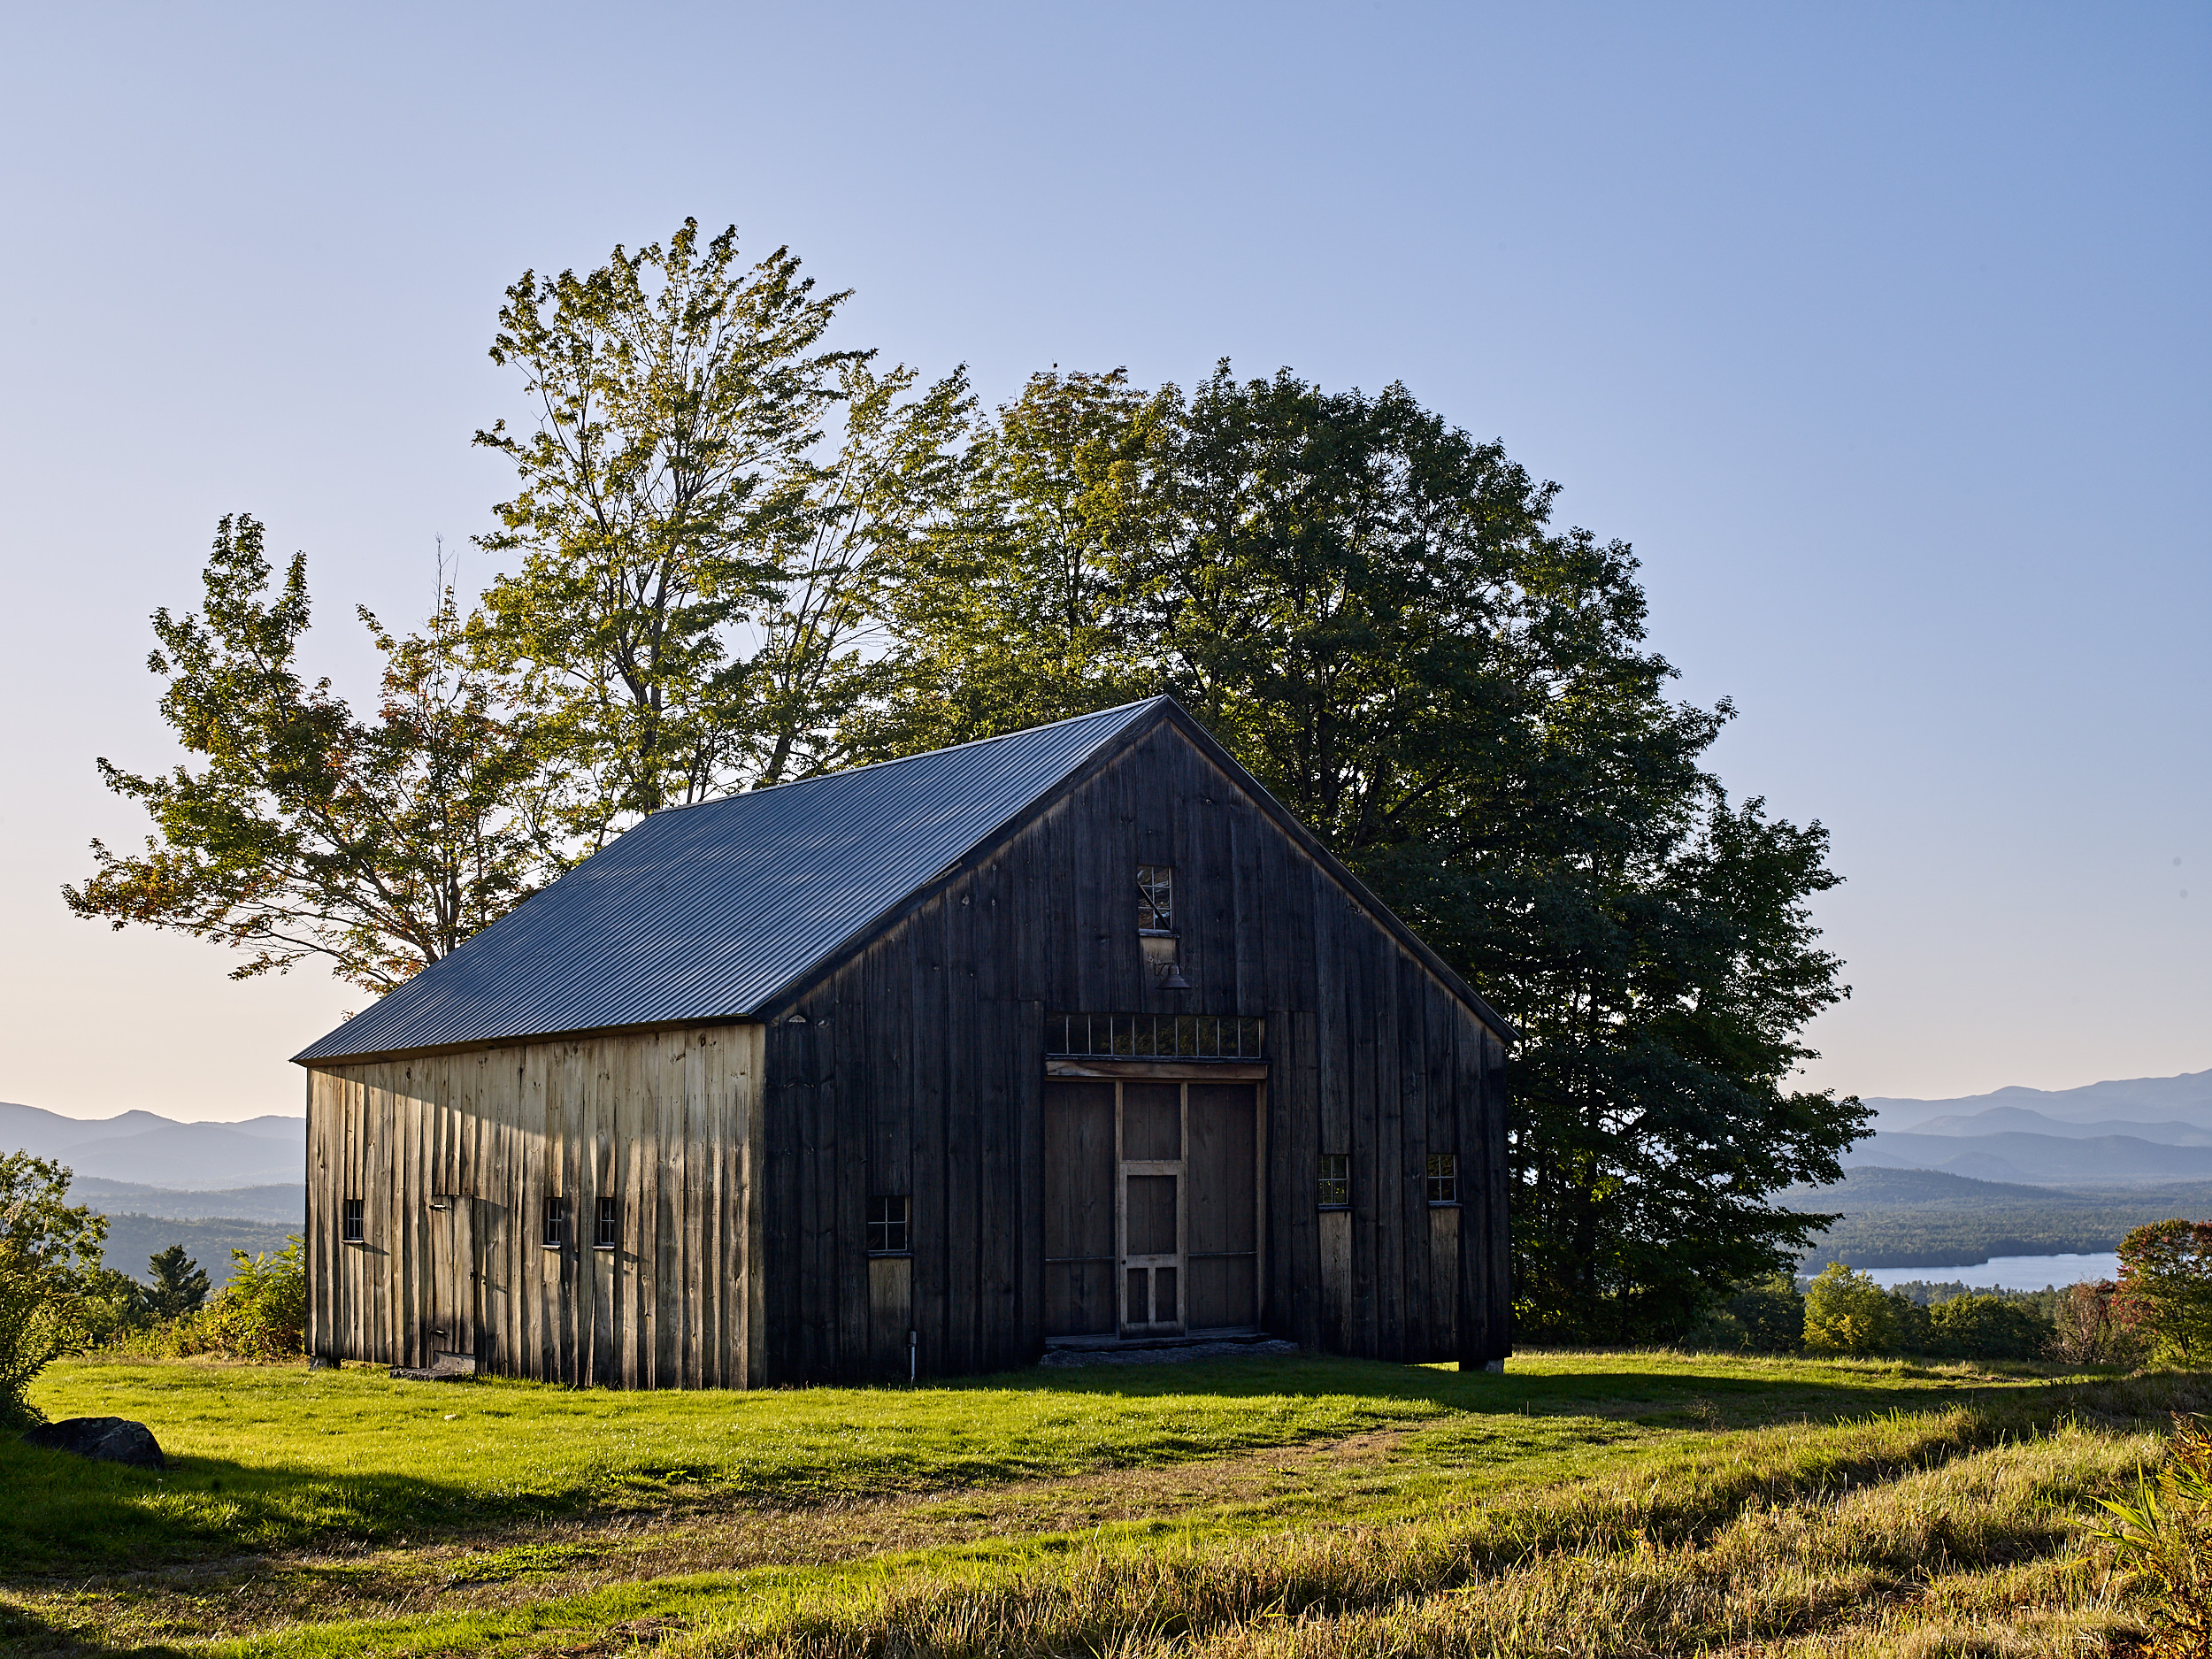 Presidential View Farm, a farm wedding venue by Mayflower Venues in Conway, NH with amazing views of The White Mountains and Conway Lake. Photos by NH wedding photographer Cate Bligh.